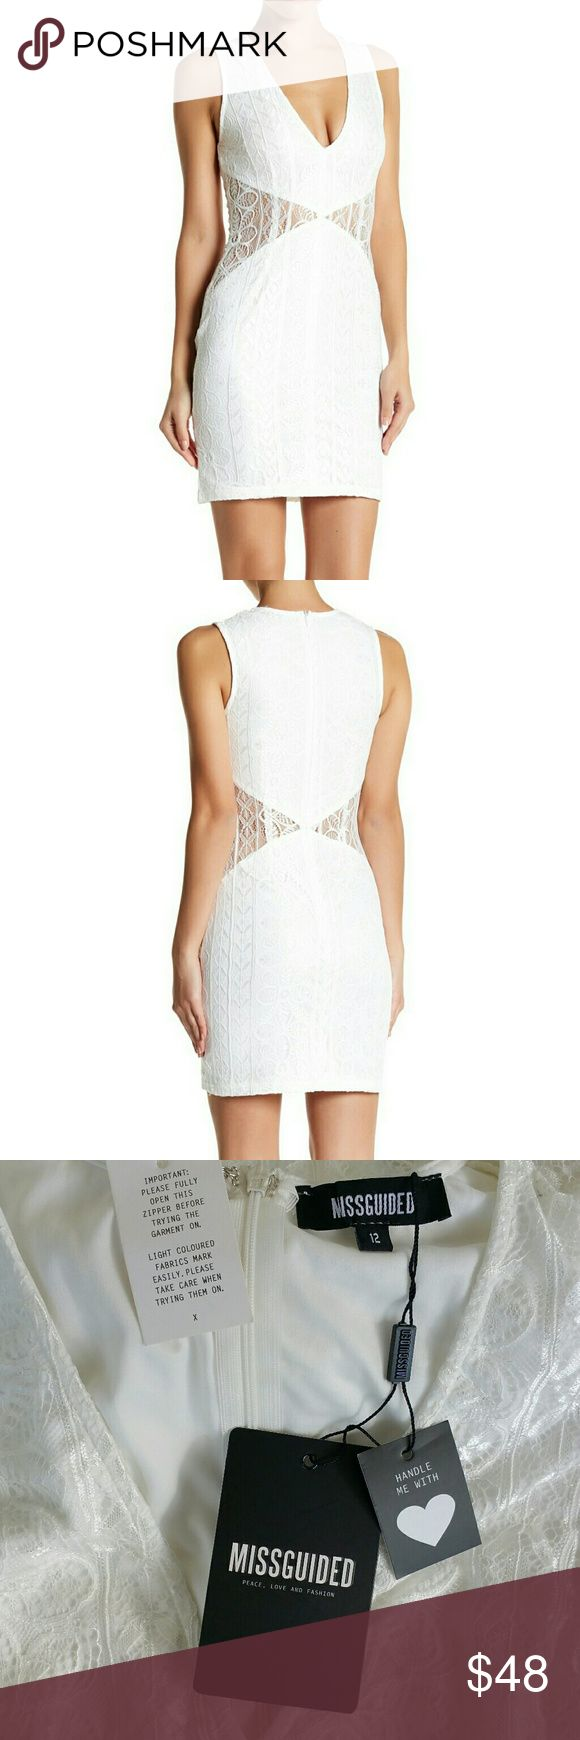 """NWT, Missguided White Cutout Lace Mini Dress Angular cutout details whittle your waist and add plenty of sass to the sweet look of a figure-hugging lace minidress cut with a flattering V-neckline and sunshine-ready sleeveless style.  - V-neck - Sleeveless - Hidden back zip closure - Approx. 35"""" length - Imported Fiber Content 100% polyester Care: Machine wash cold, dry flat Additional Info Fit: this style fits true to size. Missguided Dresses Mini"""